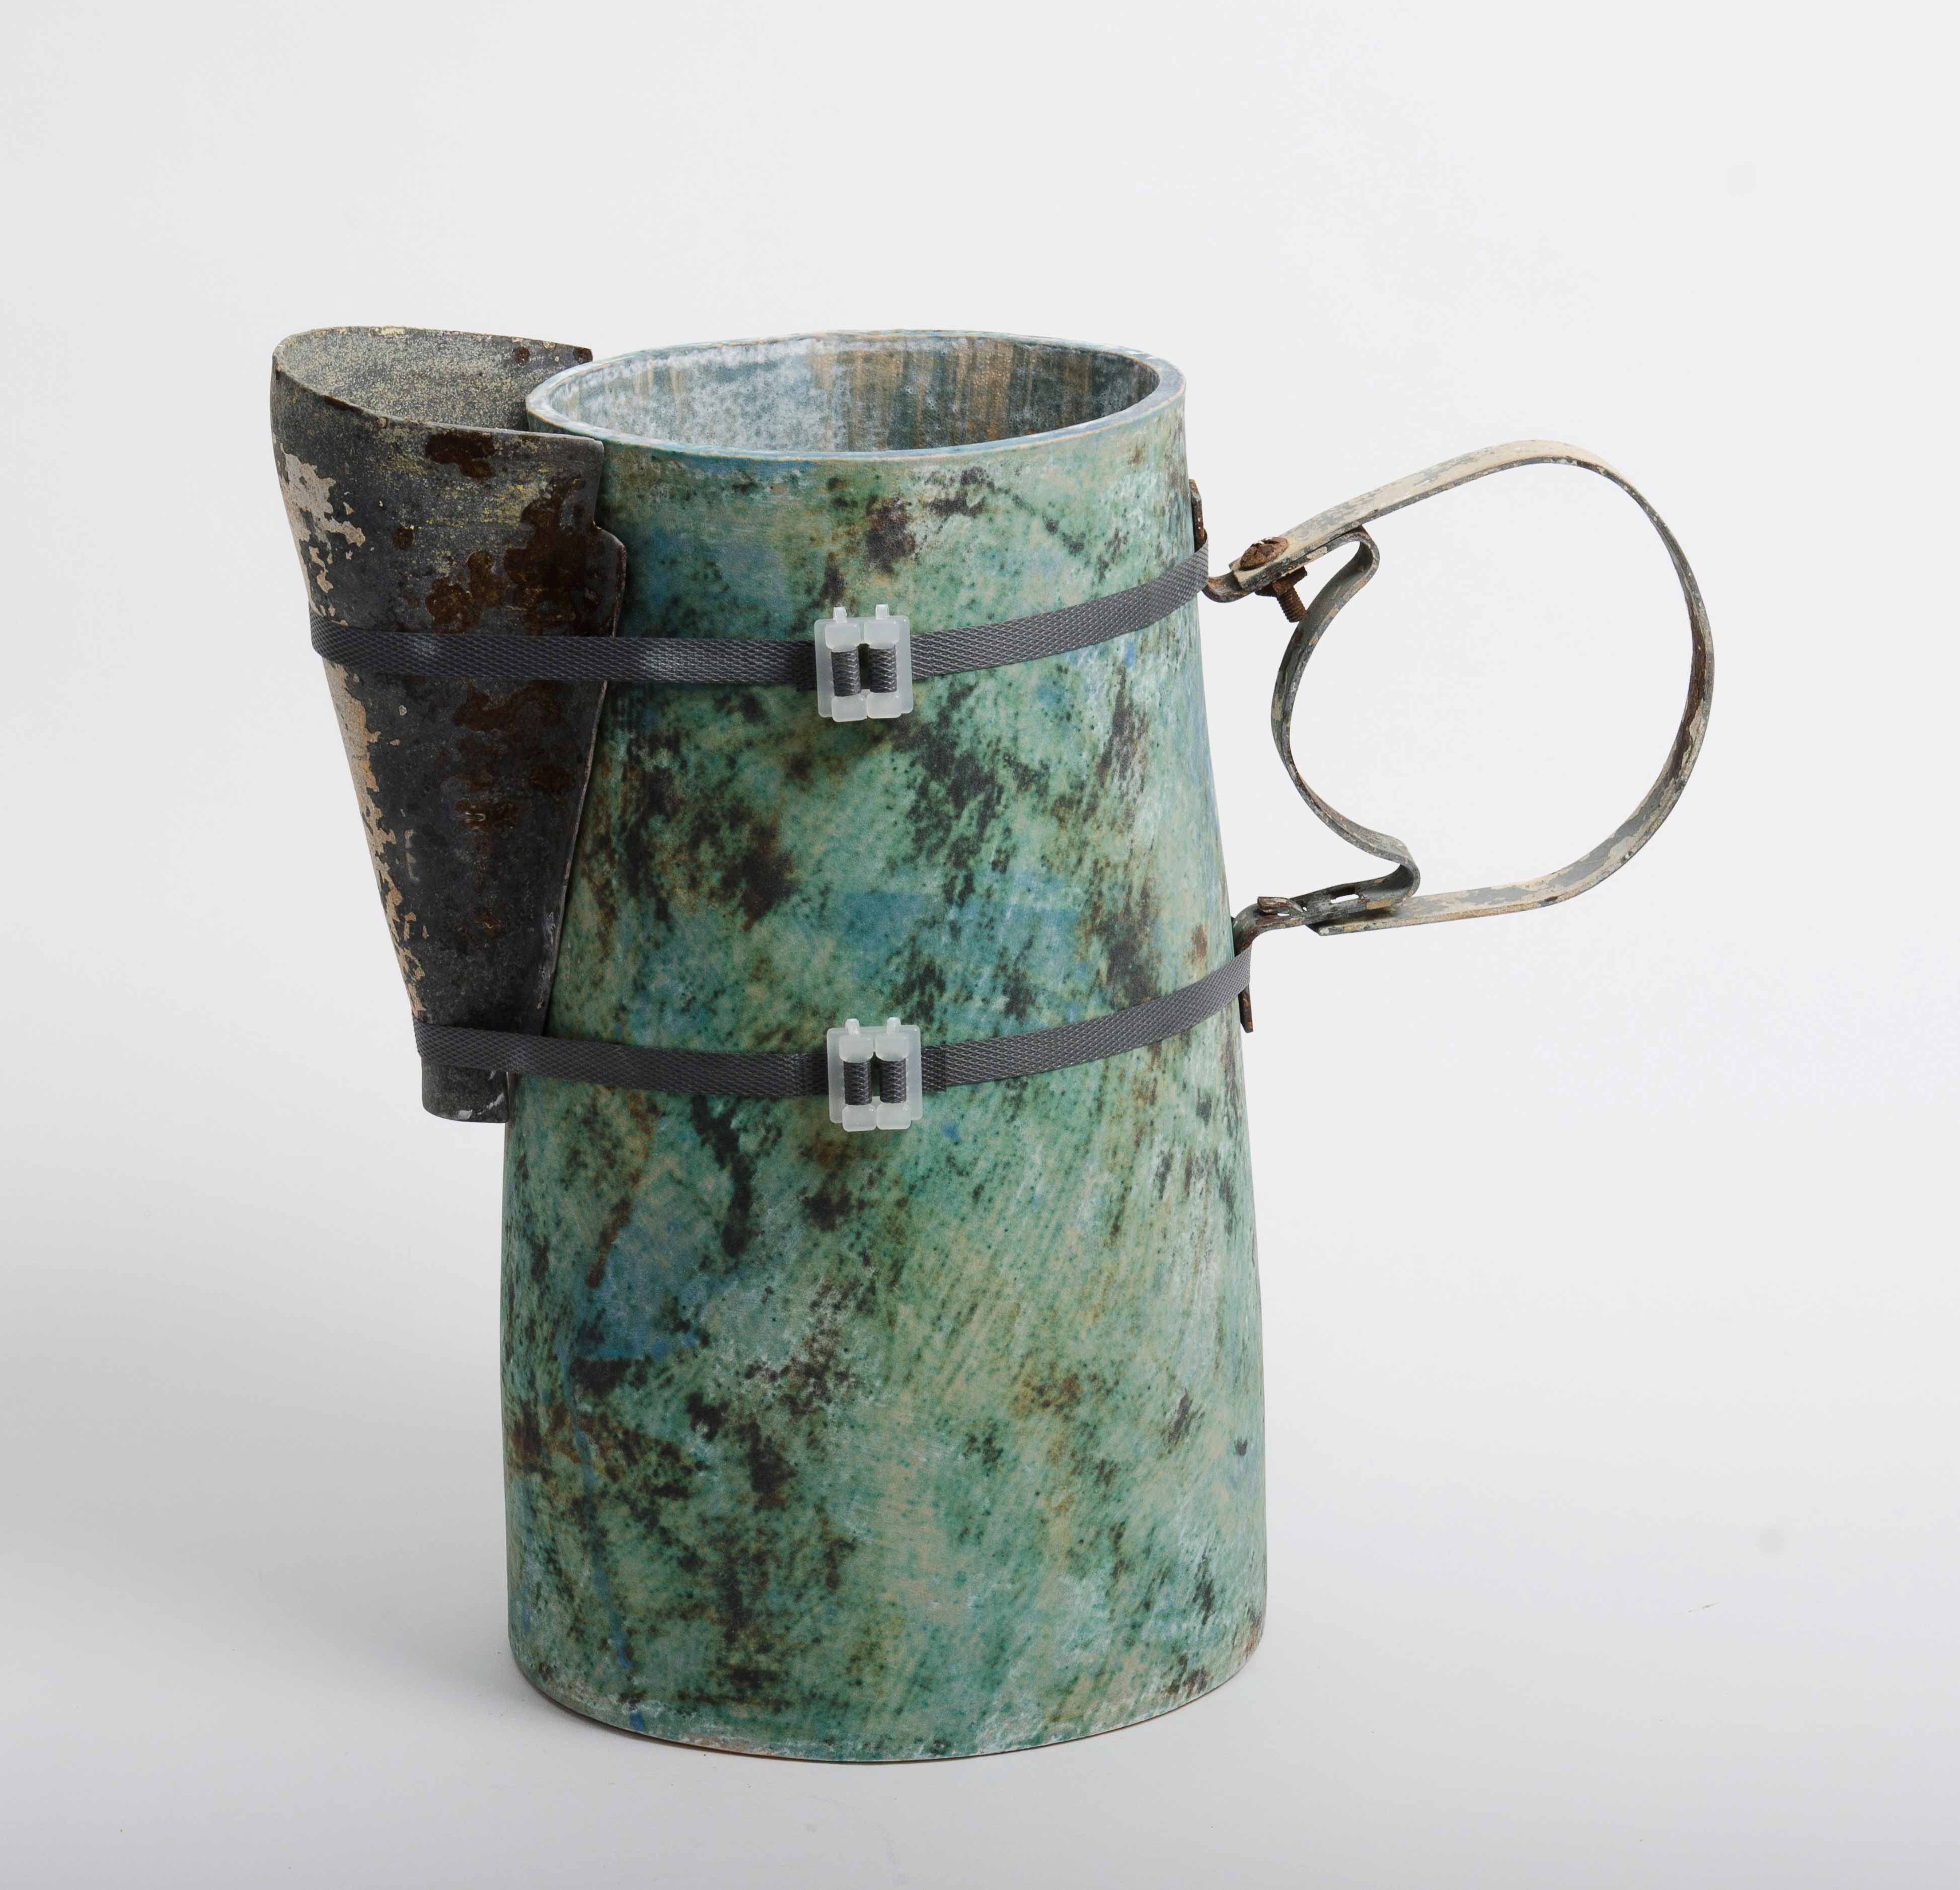 Mike Byrne, Allogamy, fired clay, metal, wood, 2014, 40 x 40 x 16cm, EUR 500